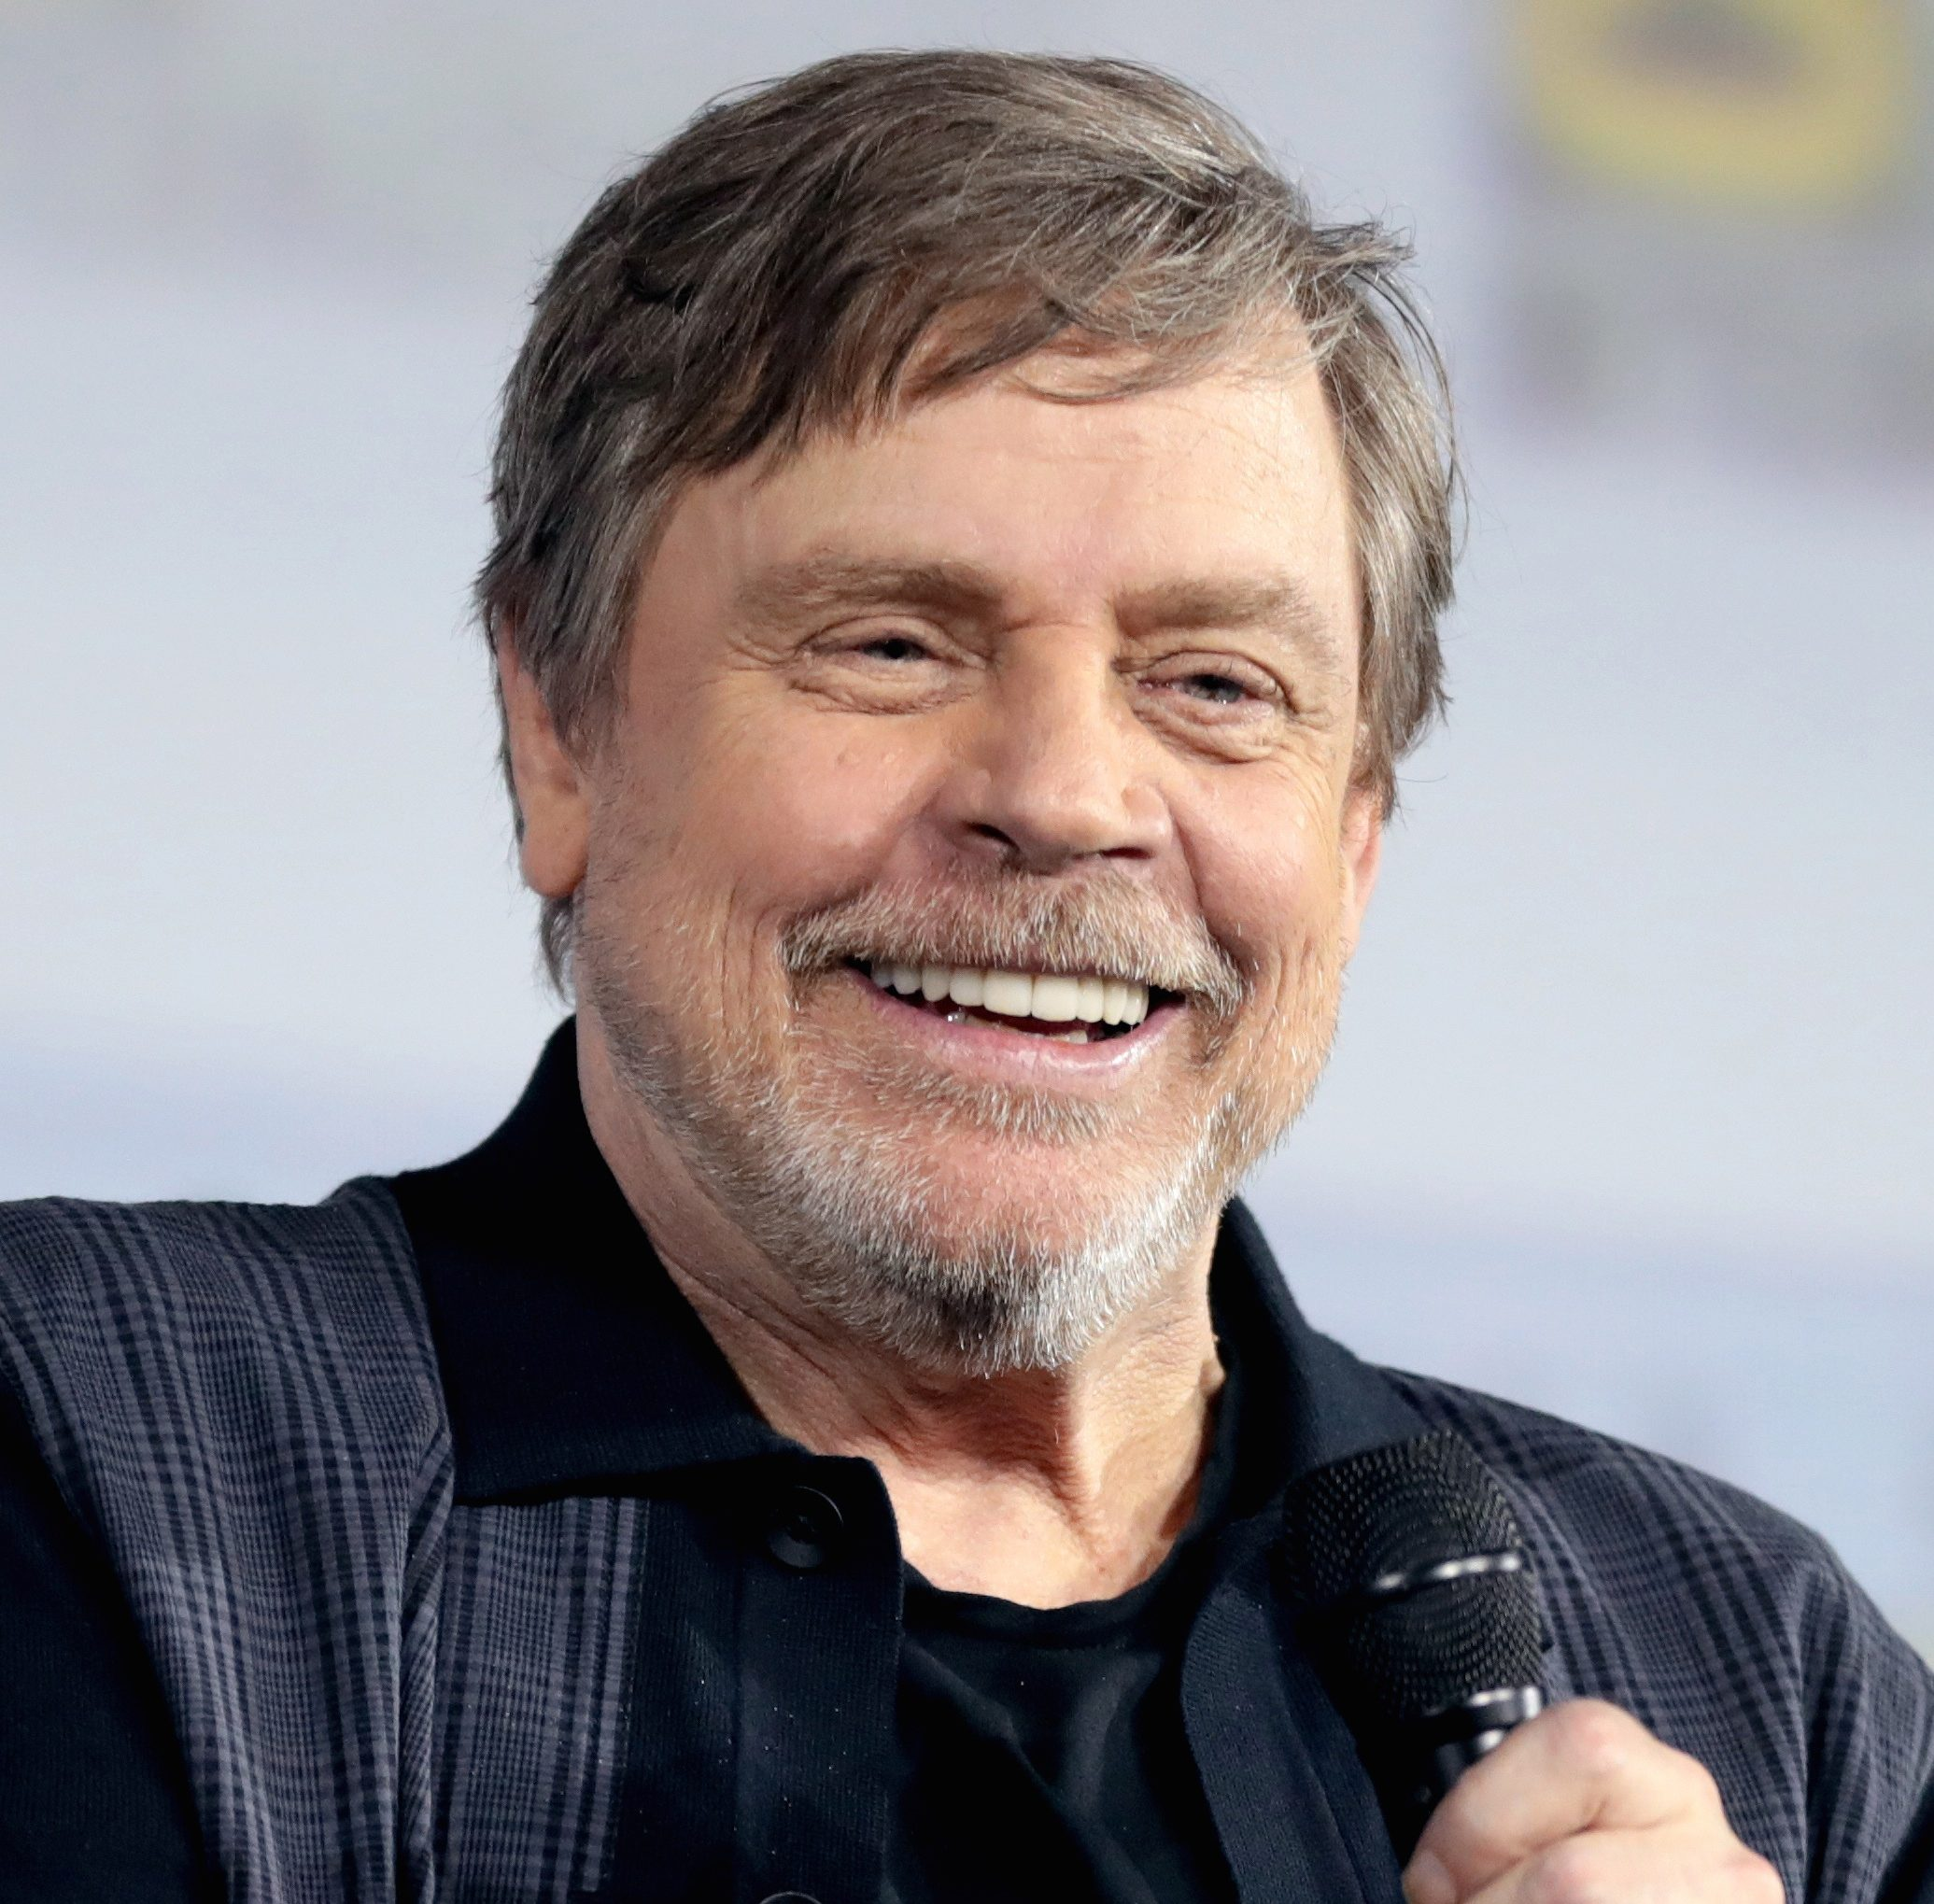 33 7 e1601474227395 20 Little-Known Facts About The Legendary Mark Hamill